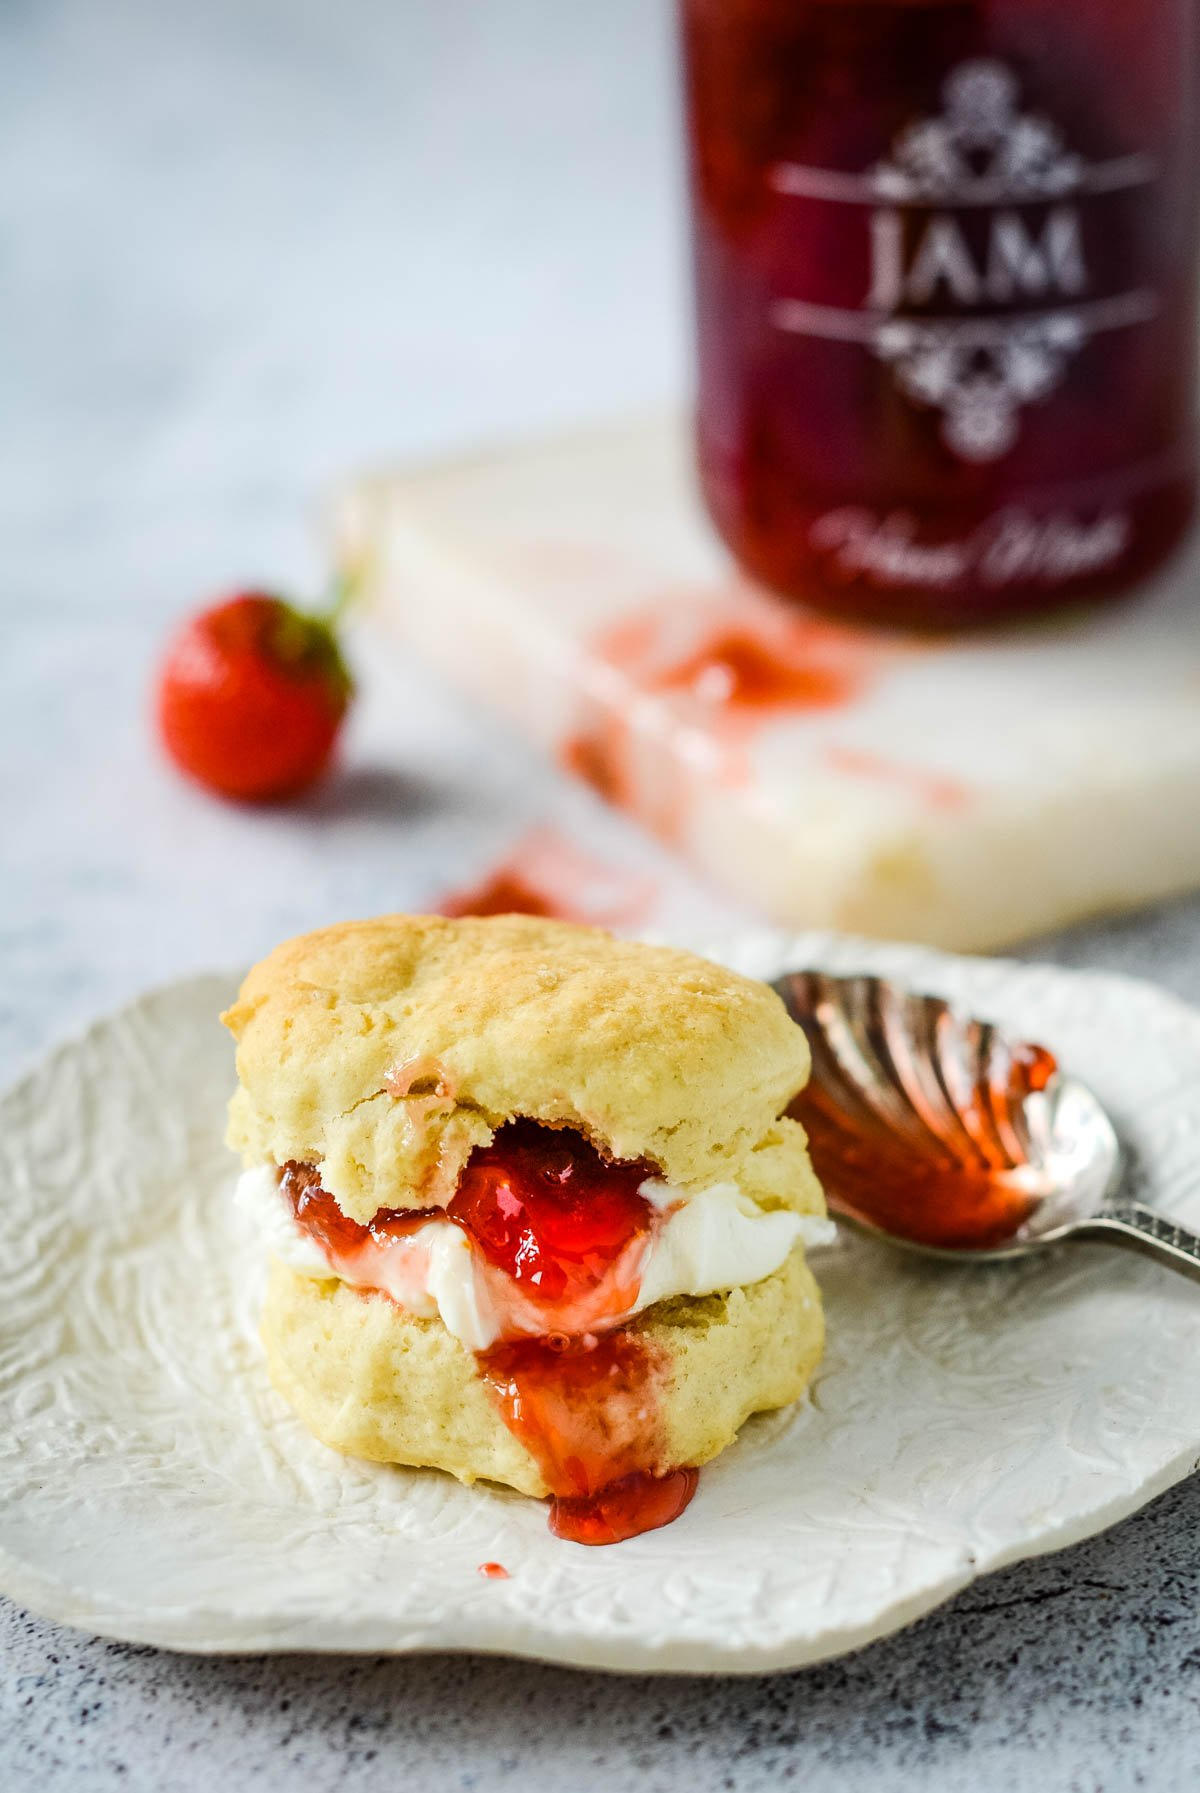 scone with jam and cream in front of jar